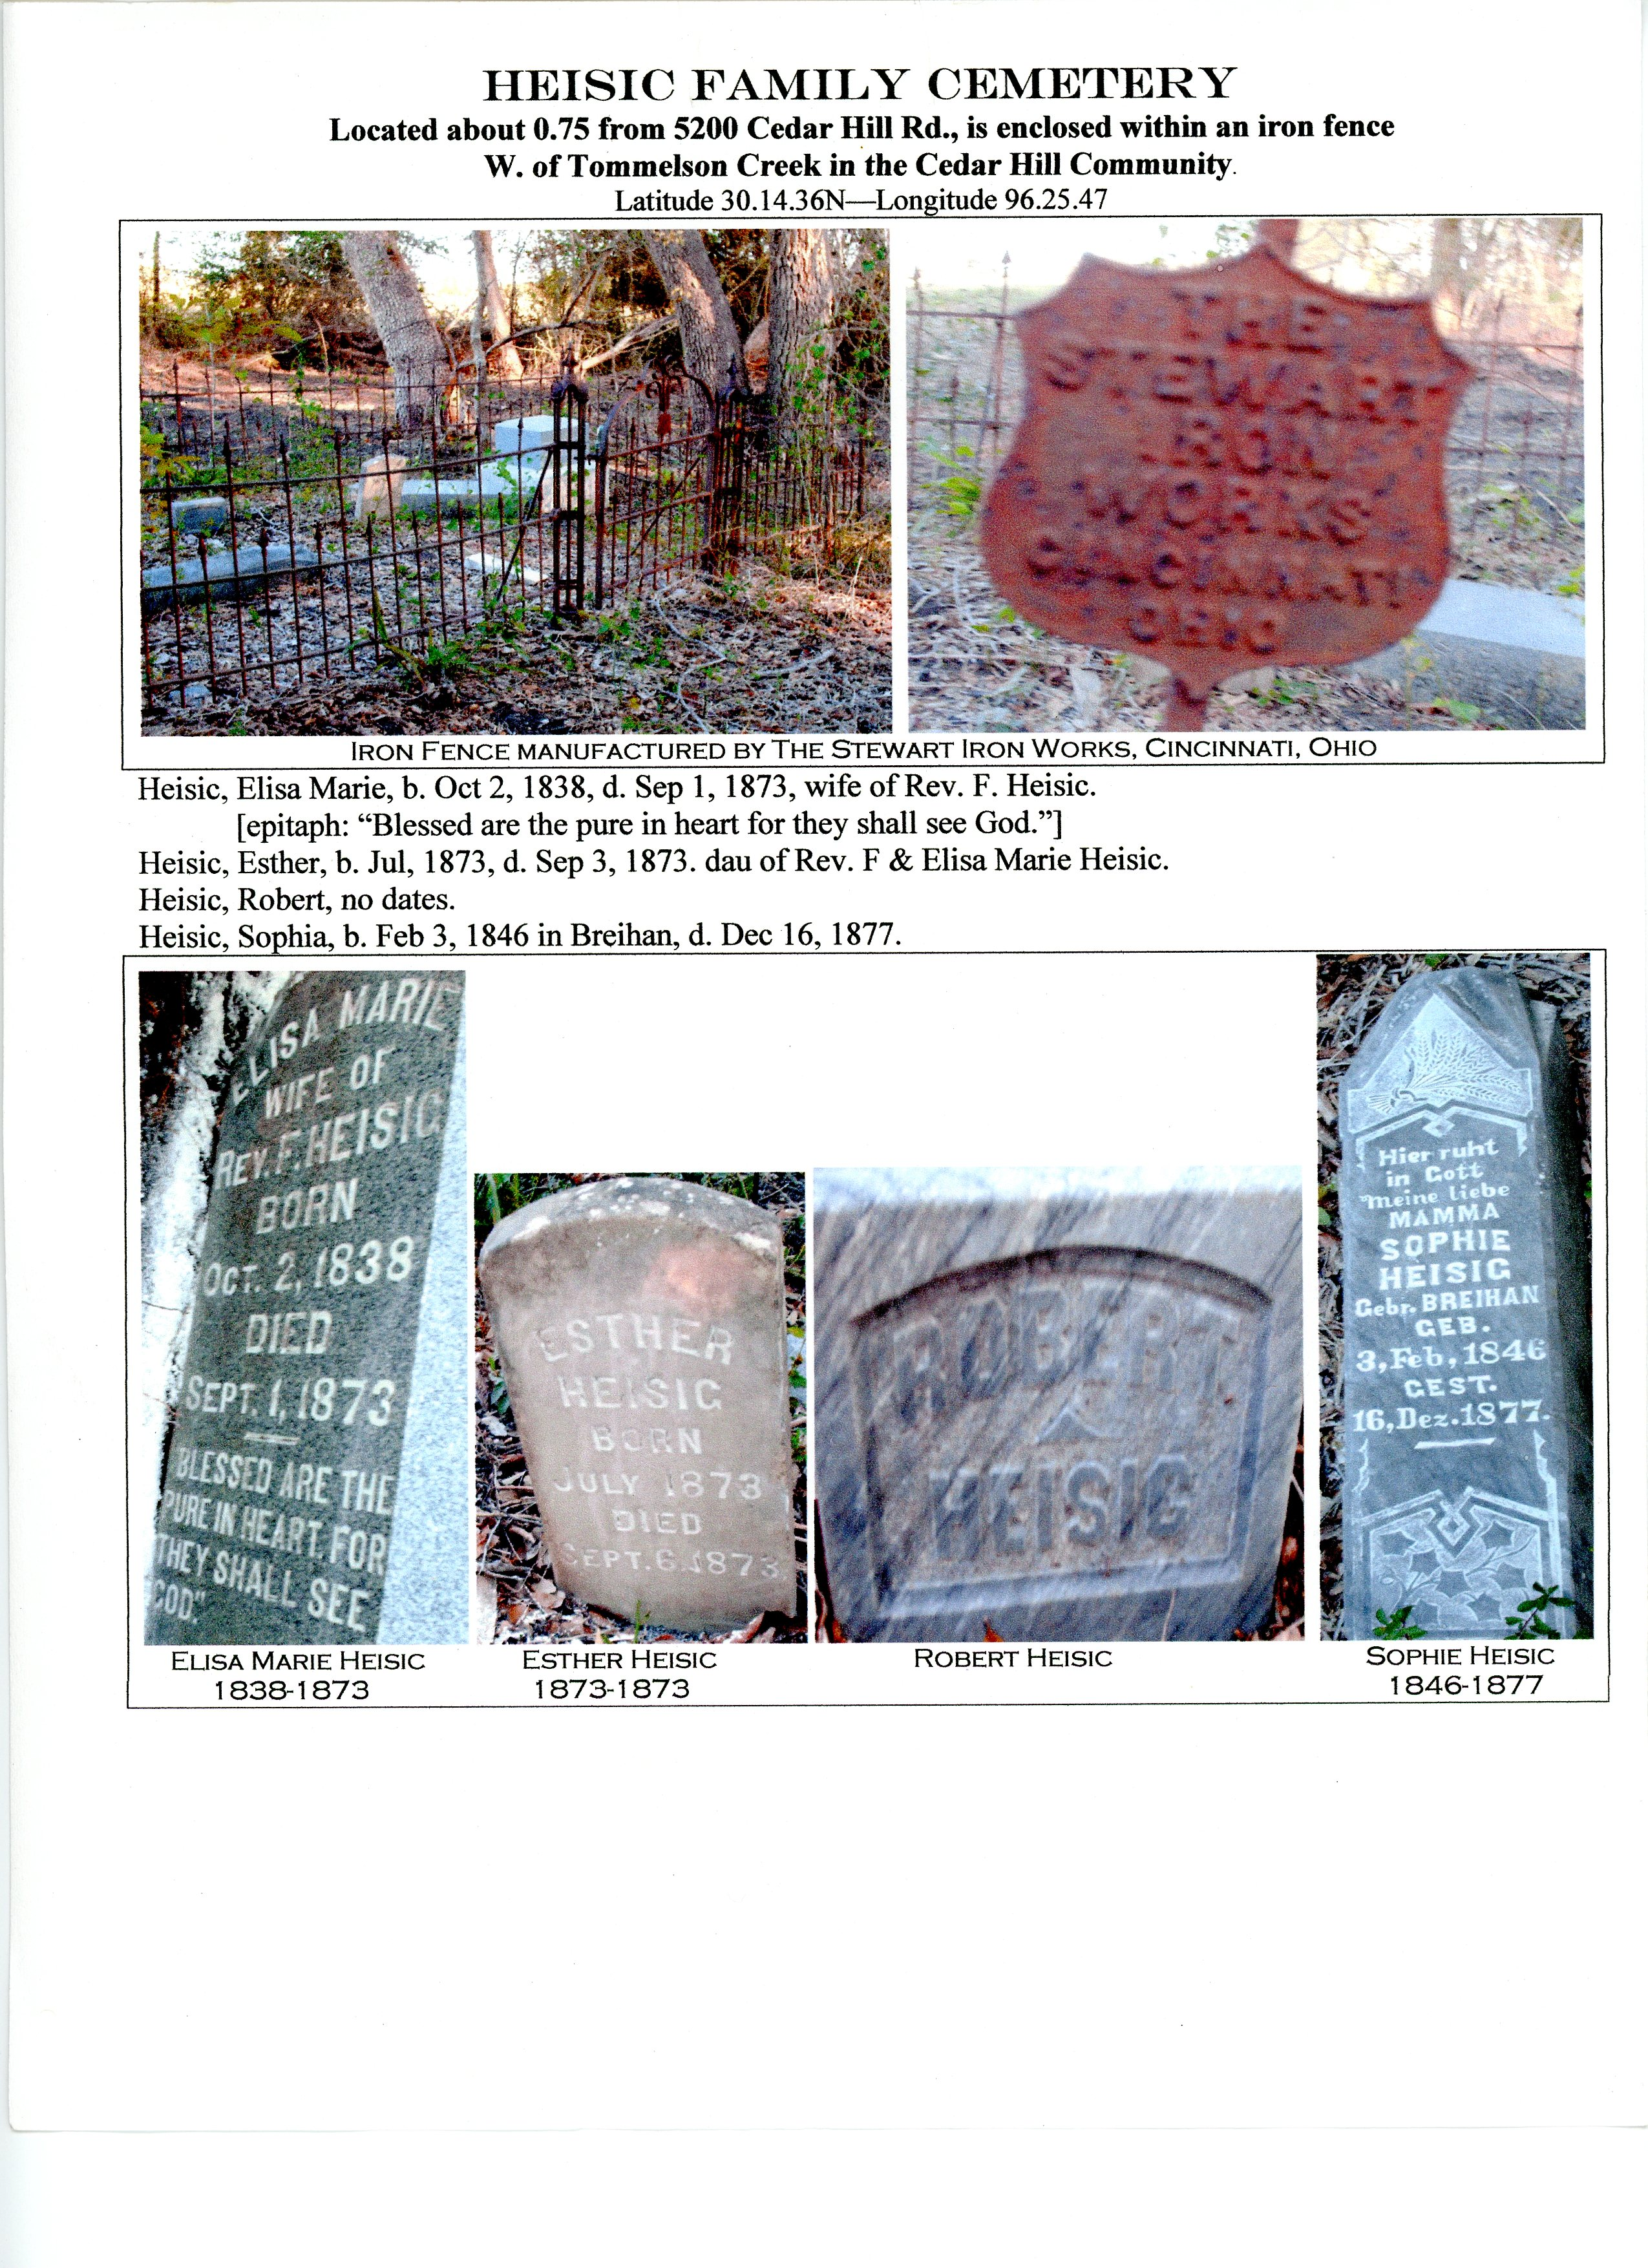 """Heisig cemetery"" mentioned in Washington County deeds for years and found on private property in 2006."